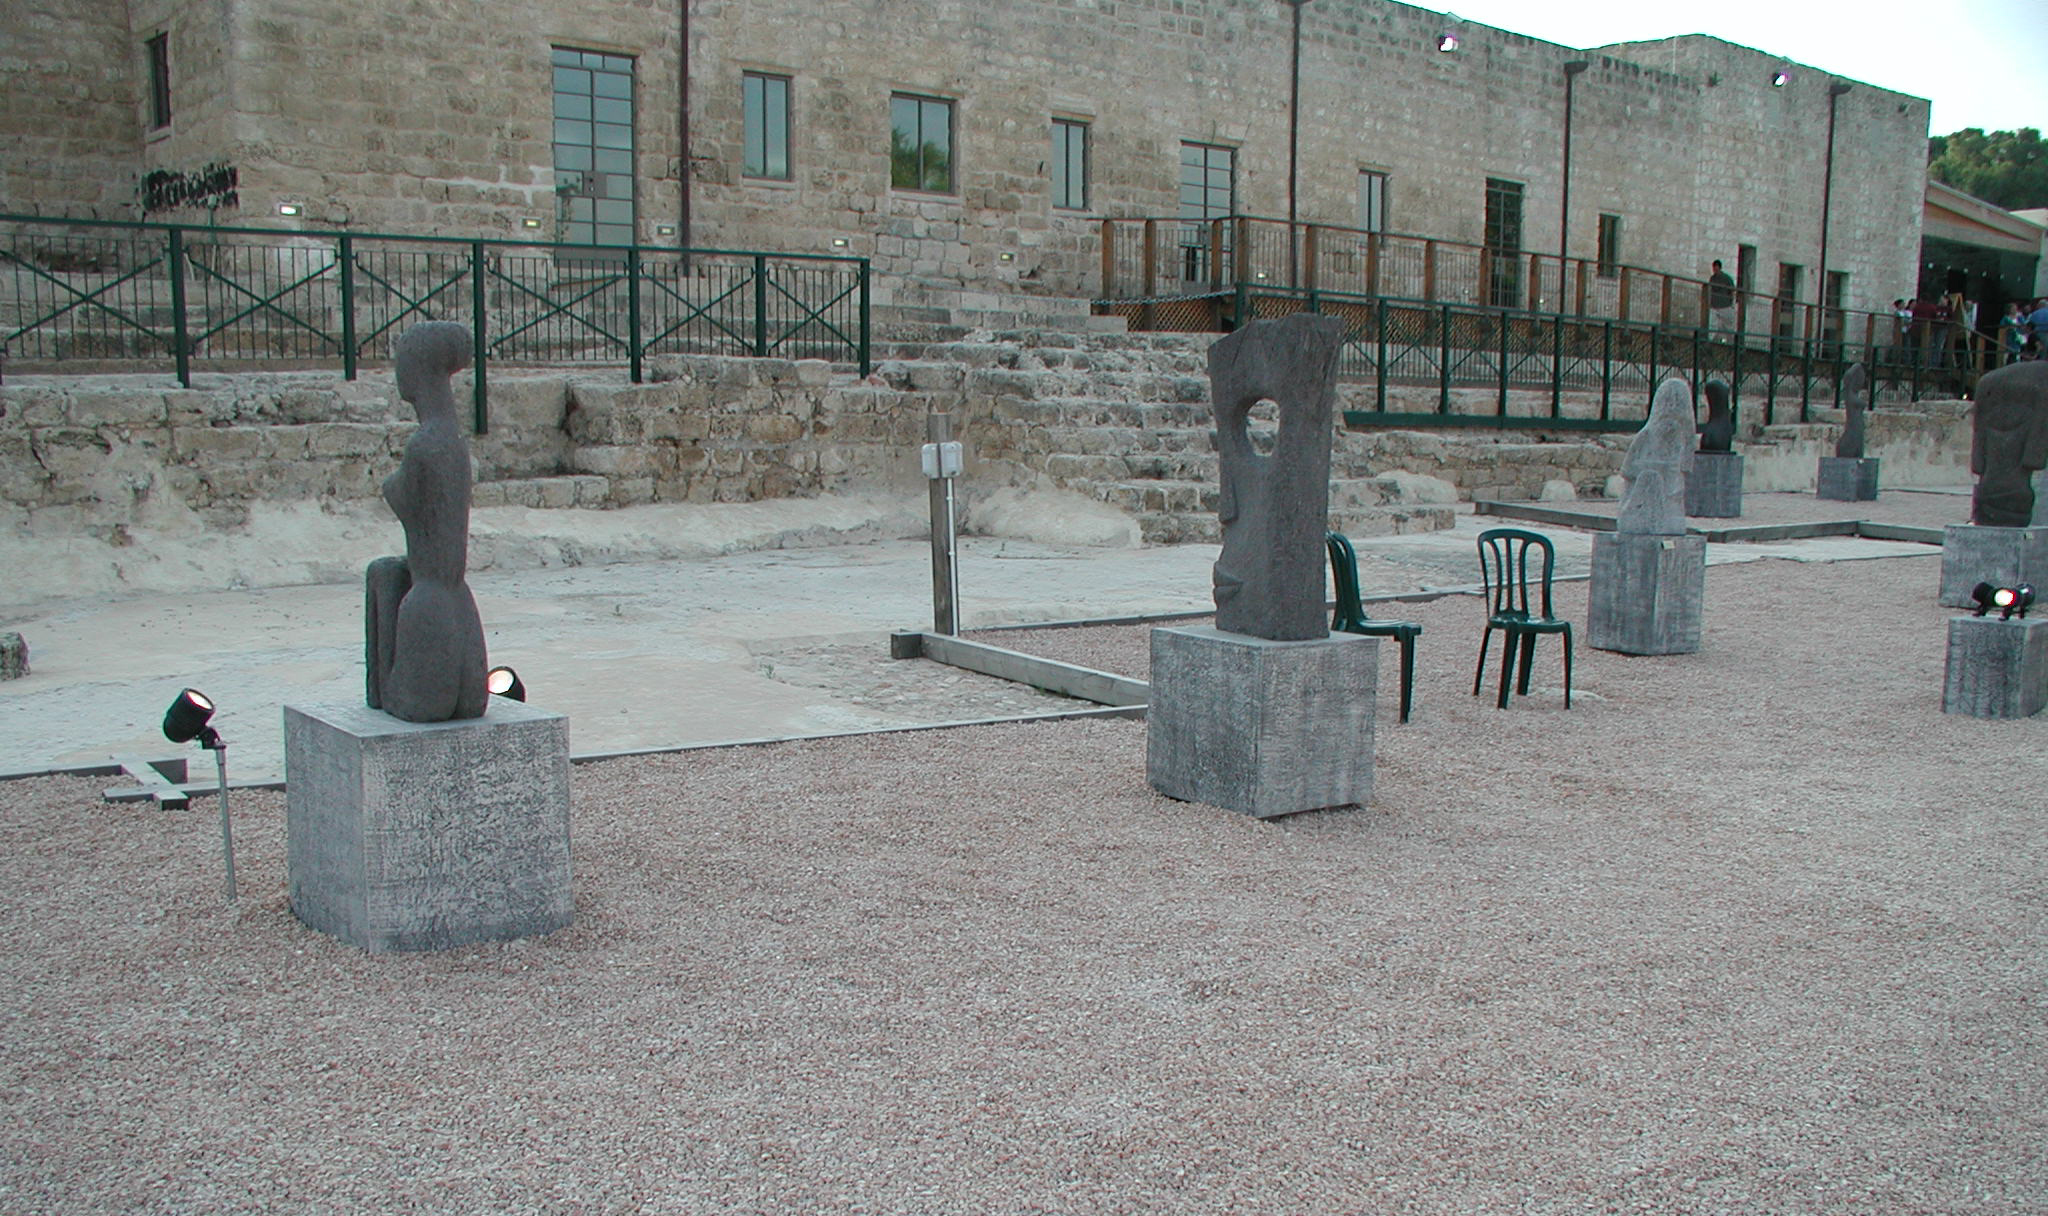 The sculptures courtyard